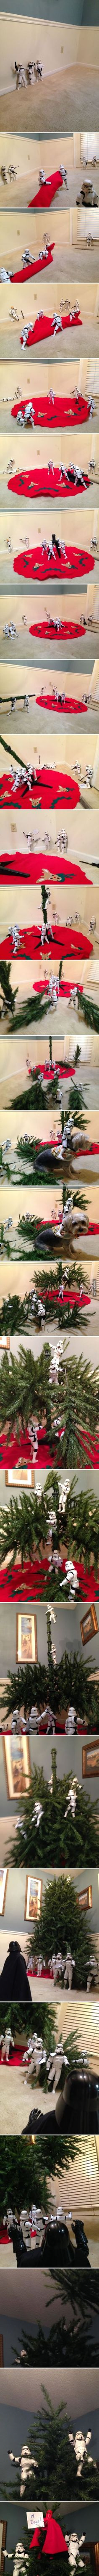 StormTroopers Assembling the Christmas Tree -